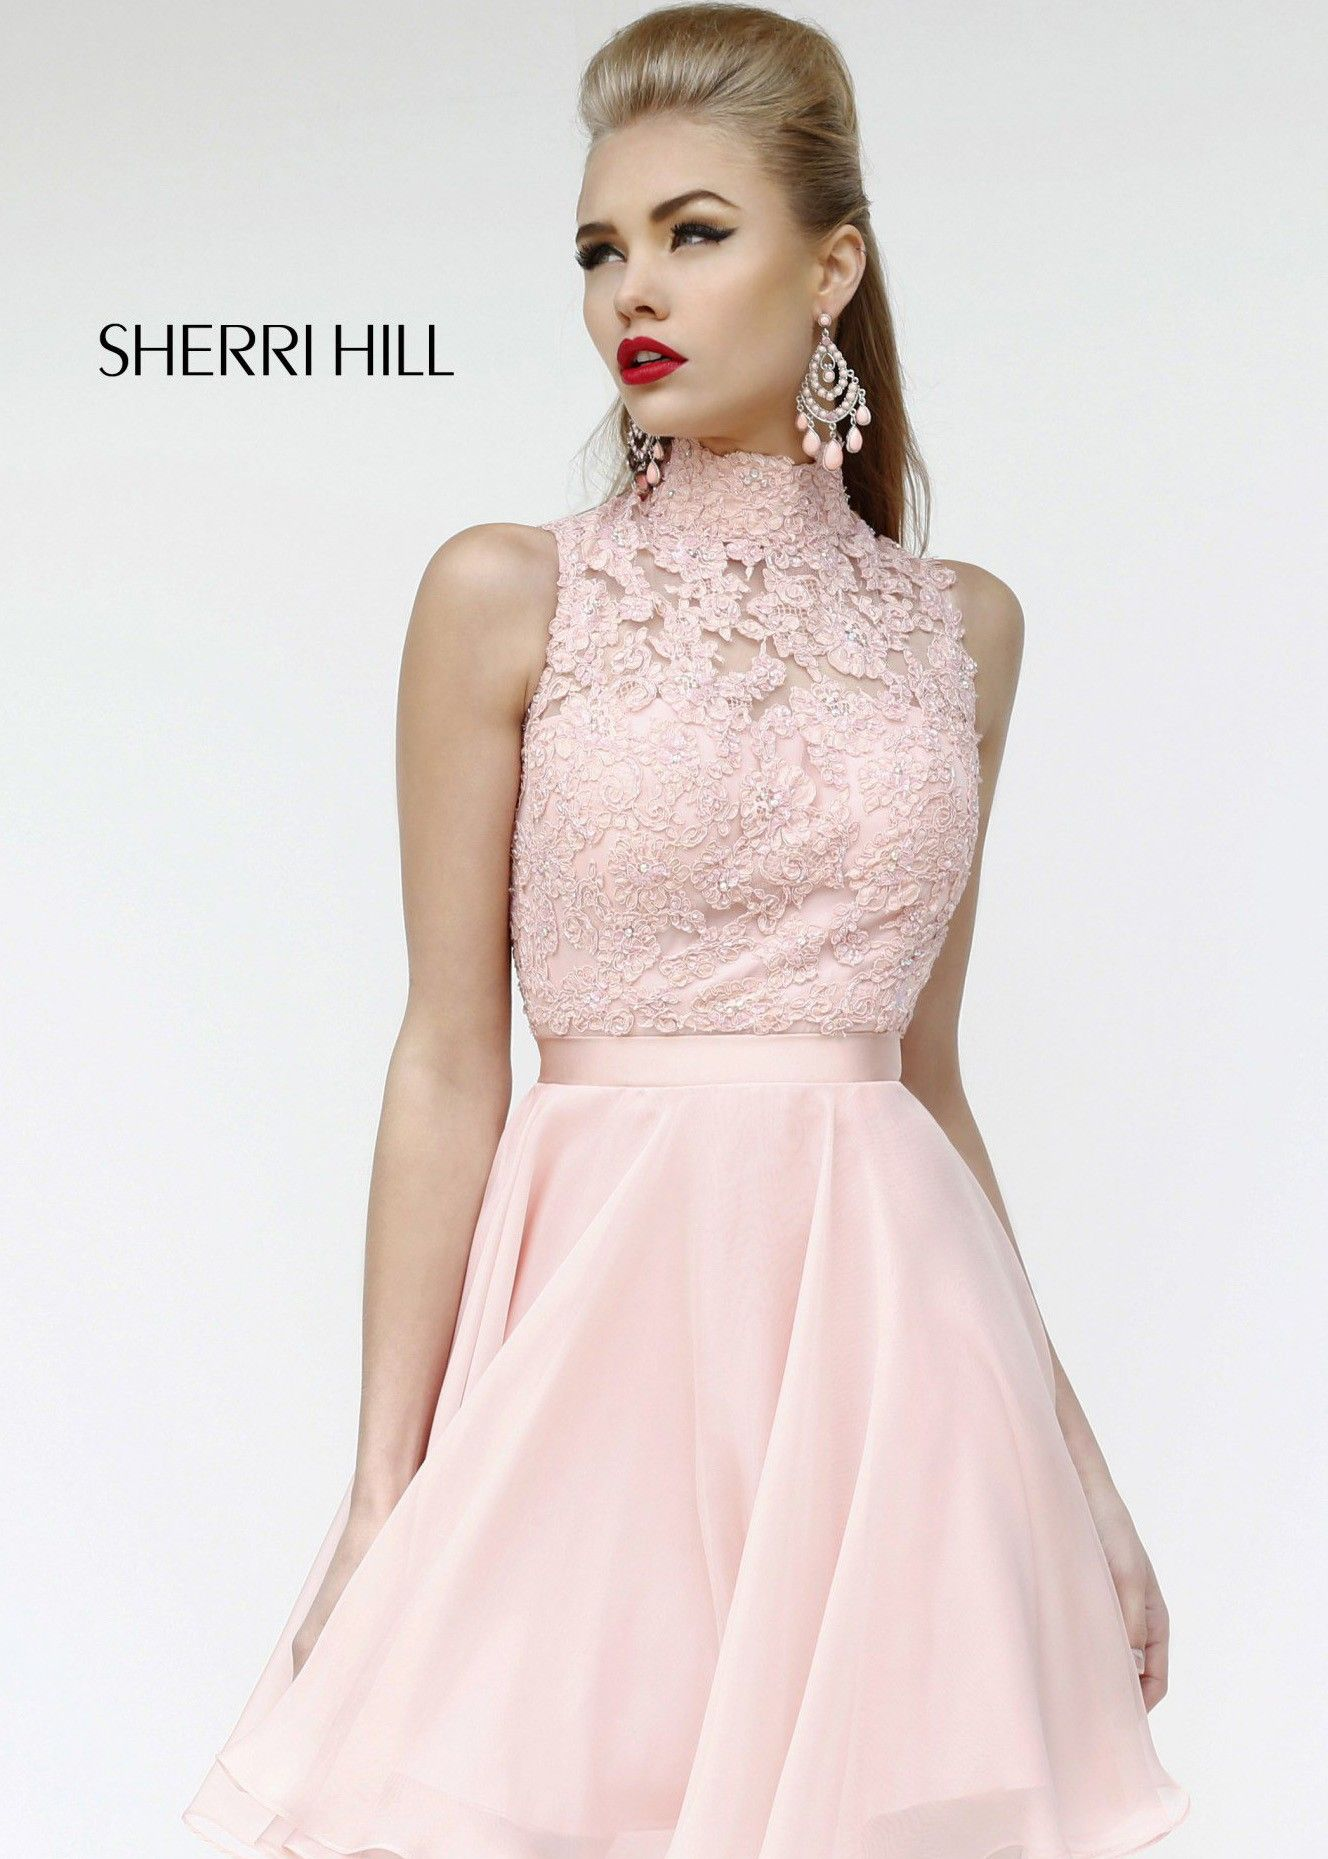 Sherri hill 21184 lace short cocktail dress a perfect summertime sherri hill 21184 lace short cocktail dress a perfect summertime dress for weddings ombrellifo Gallery